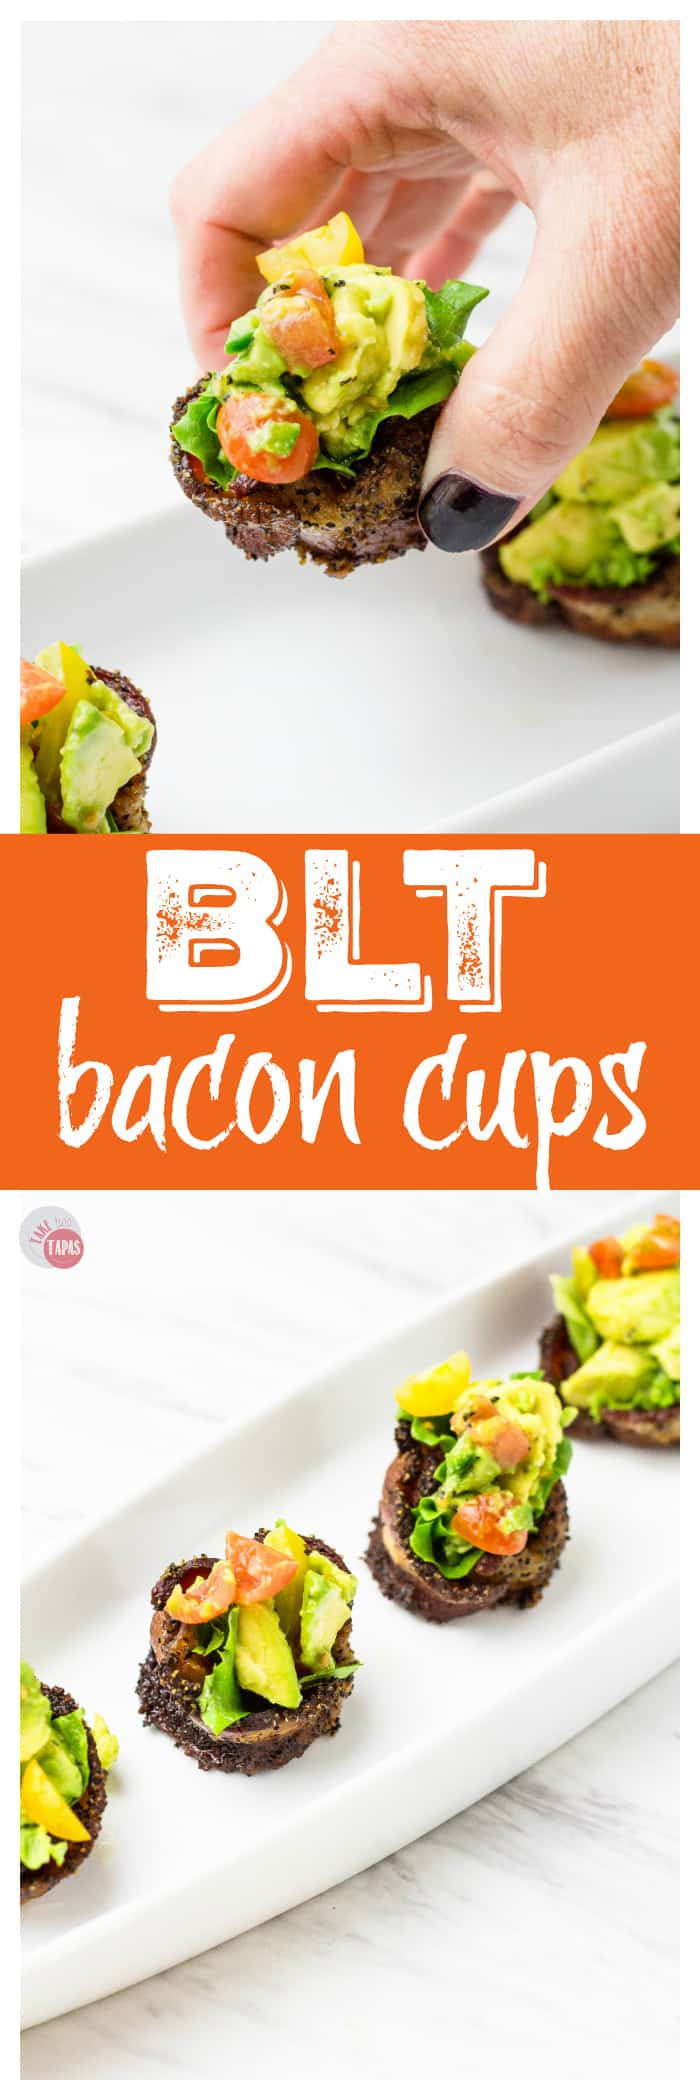 Quick and Easy BLT Bacon Cups | Take Two Tapas | #Paleo #bacon #BLT #avocado #Appetizers #BaconCups #PartyFoods #Tailgating